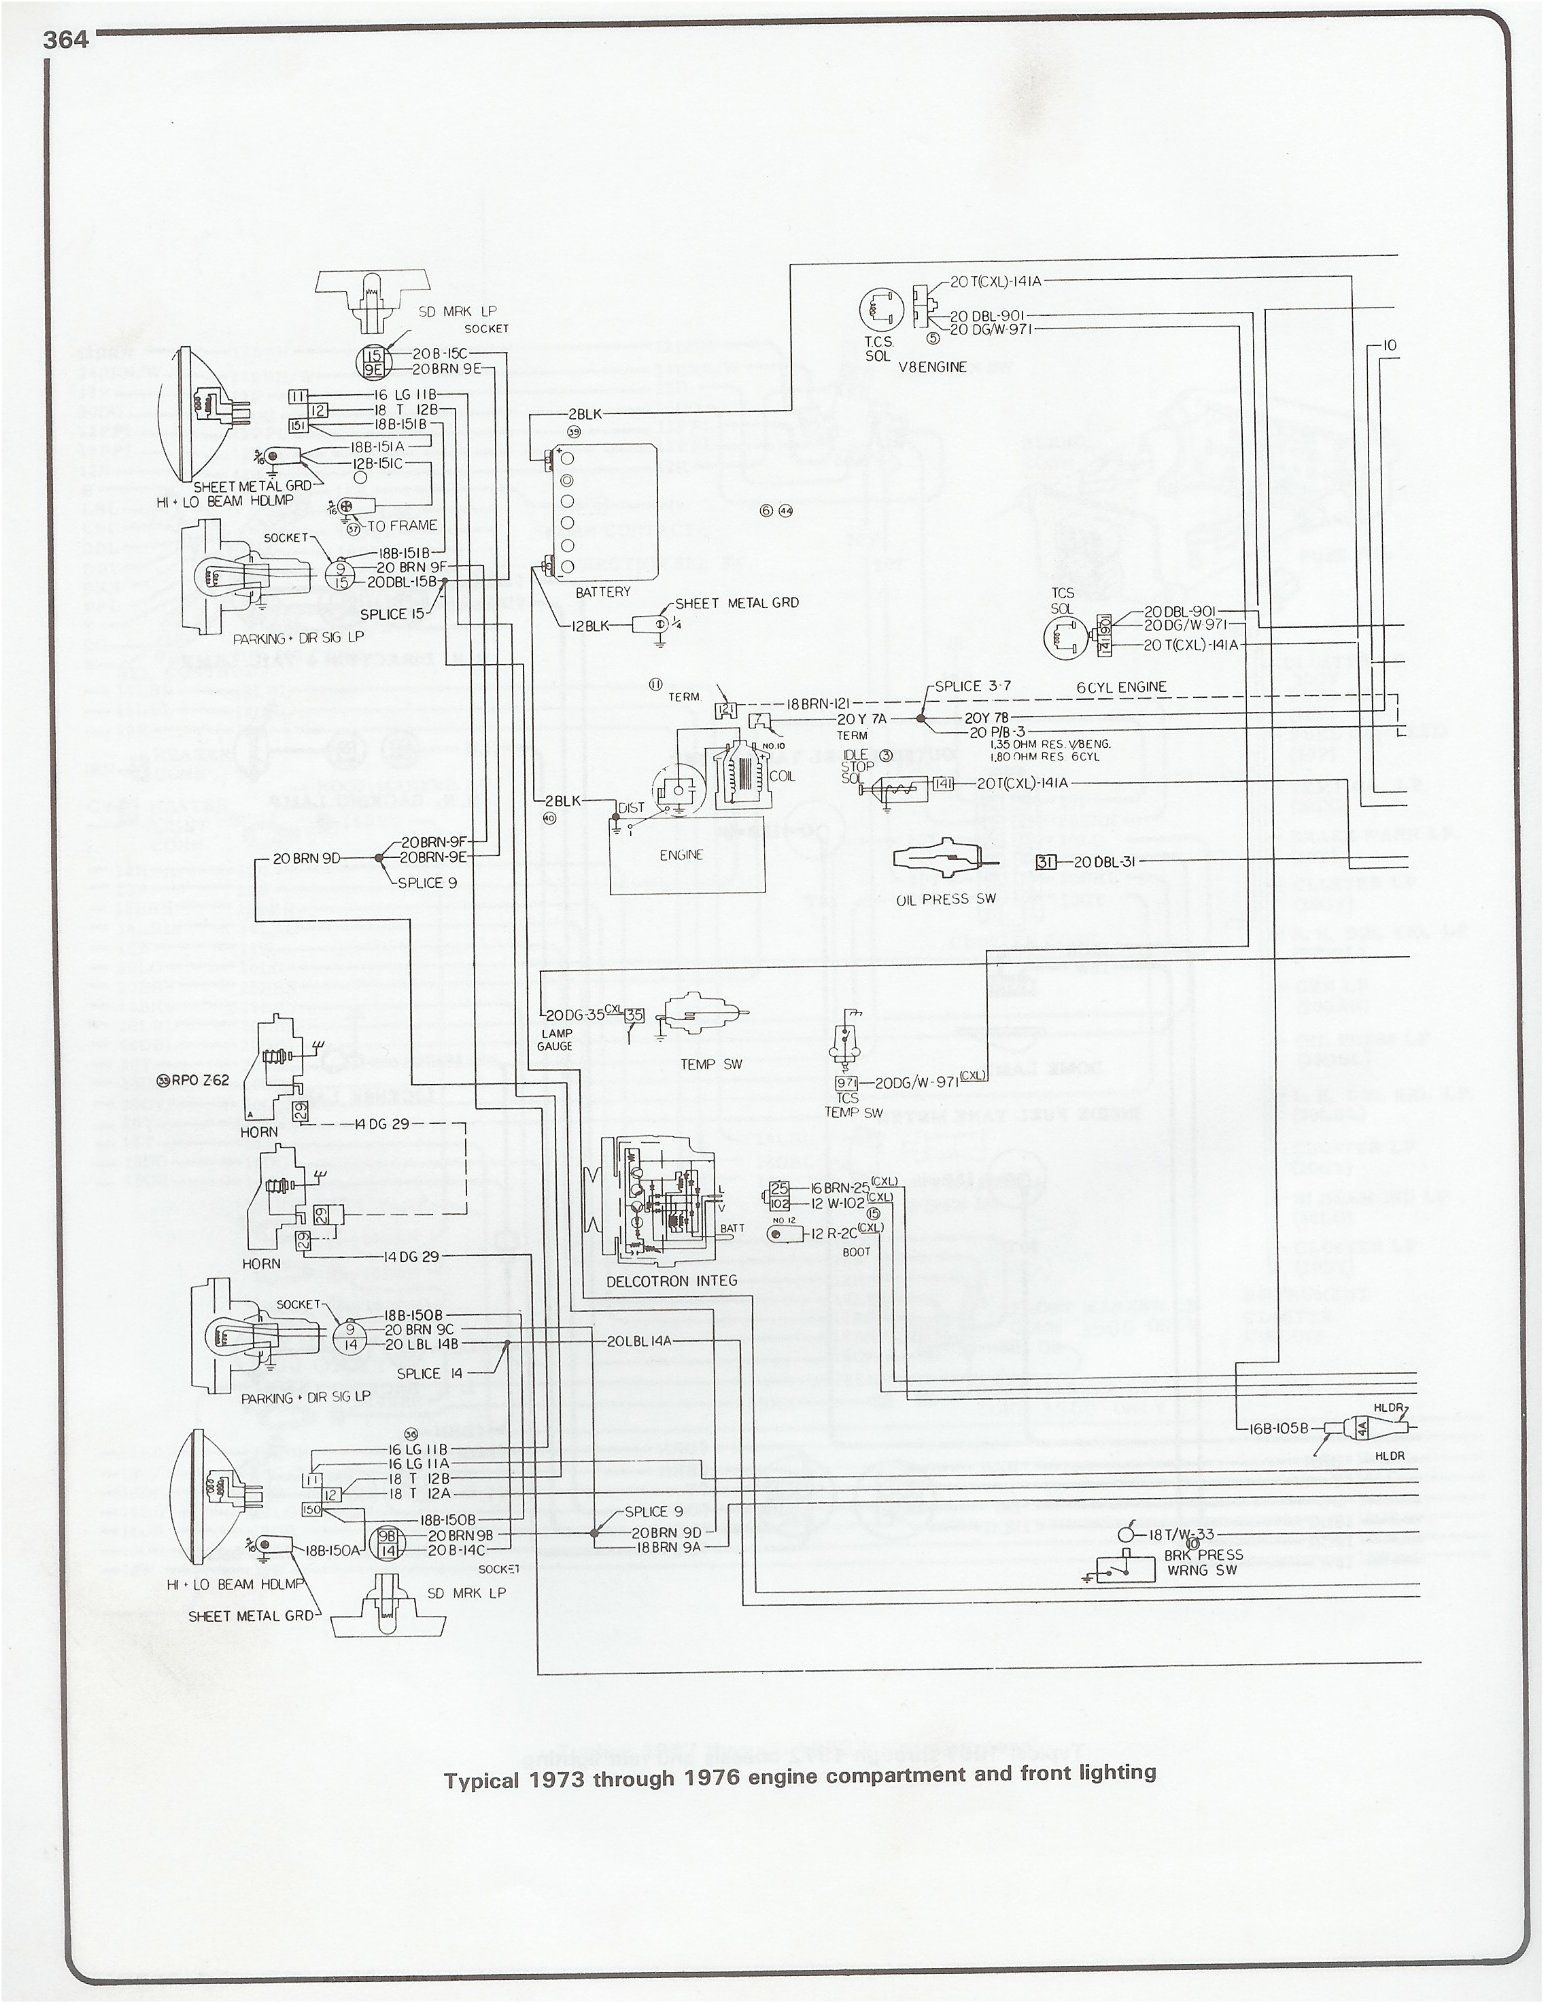 1973 camaro wiring diagram trusted schematics wiring diagrams u2022 rh bestbooksrichtreasures com